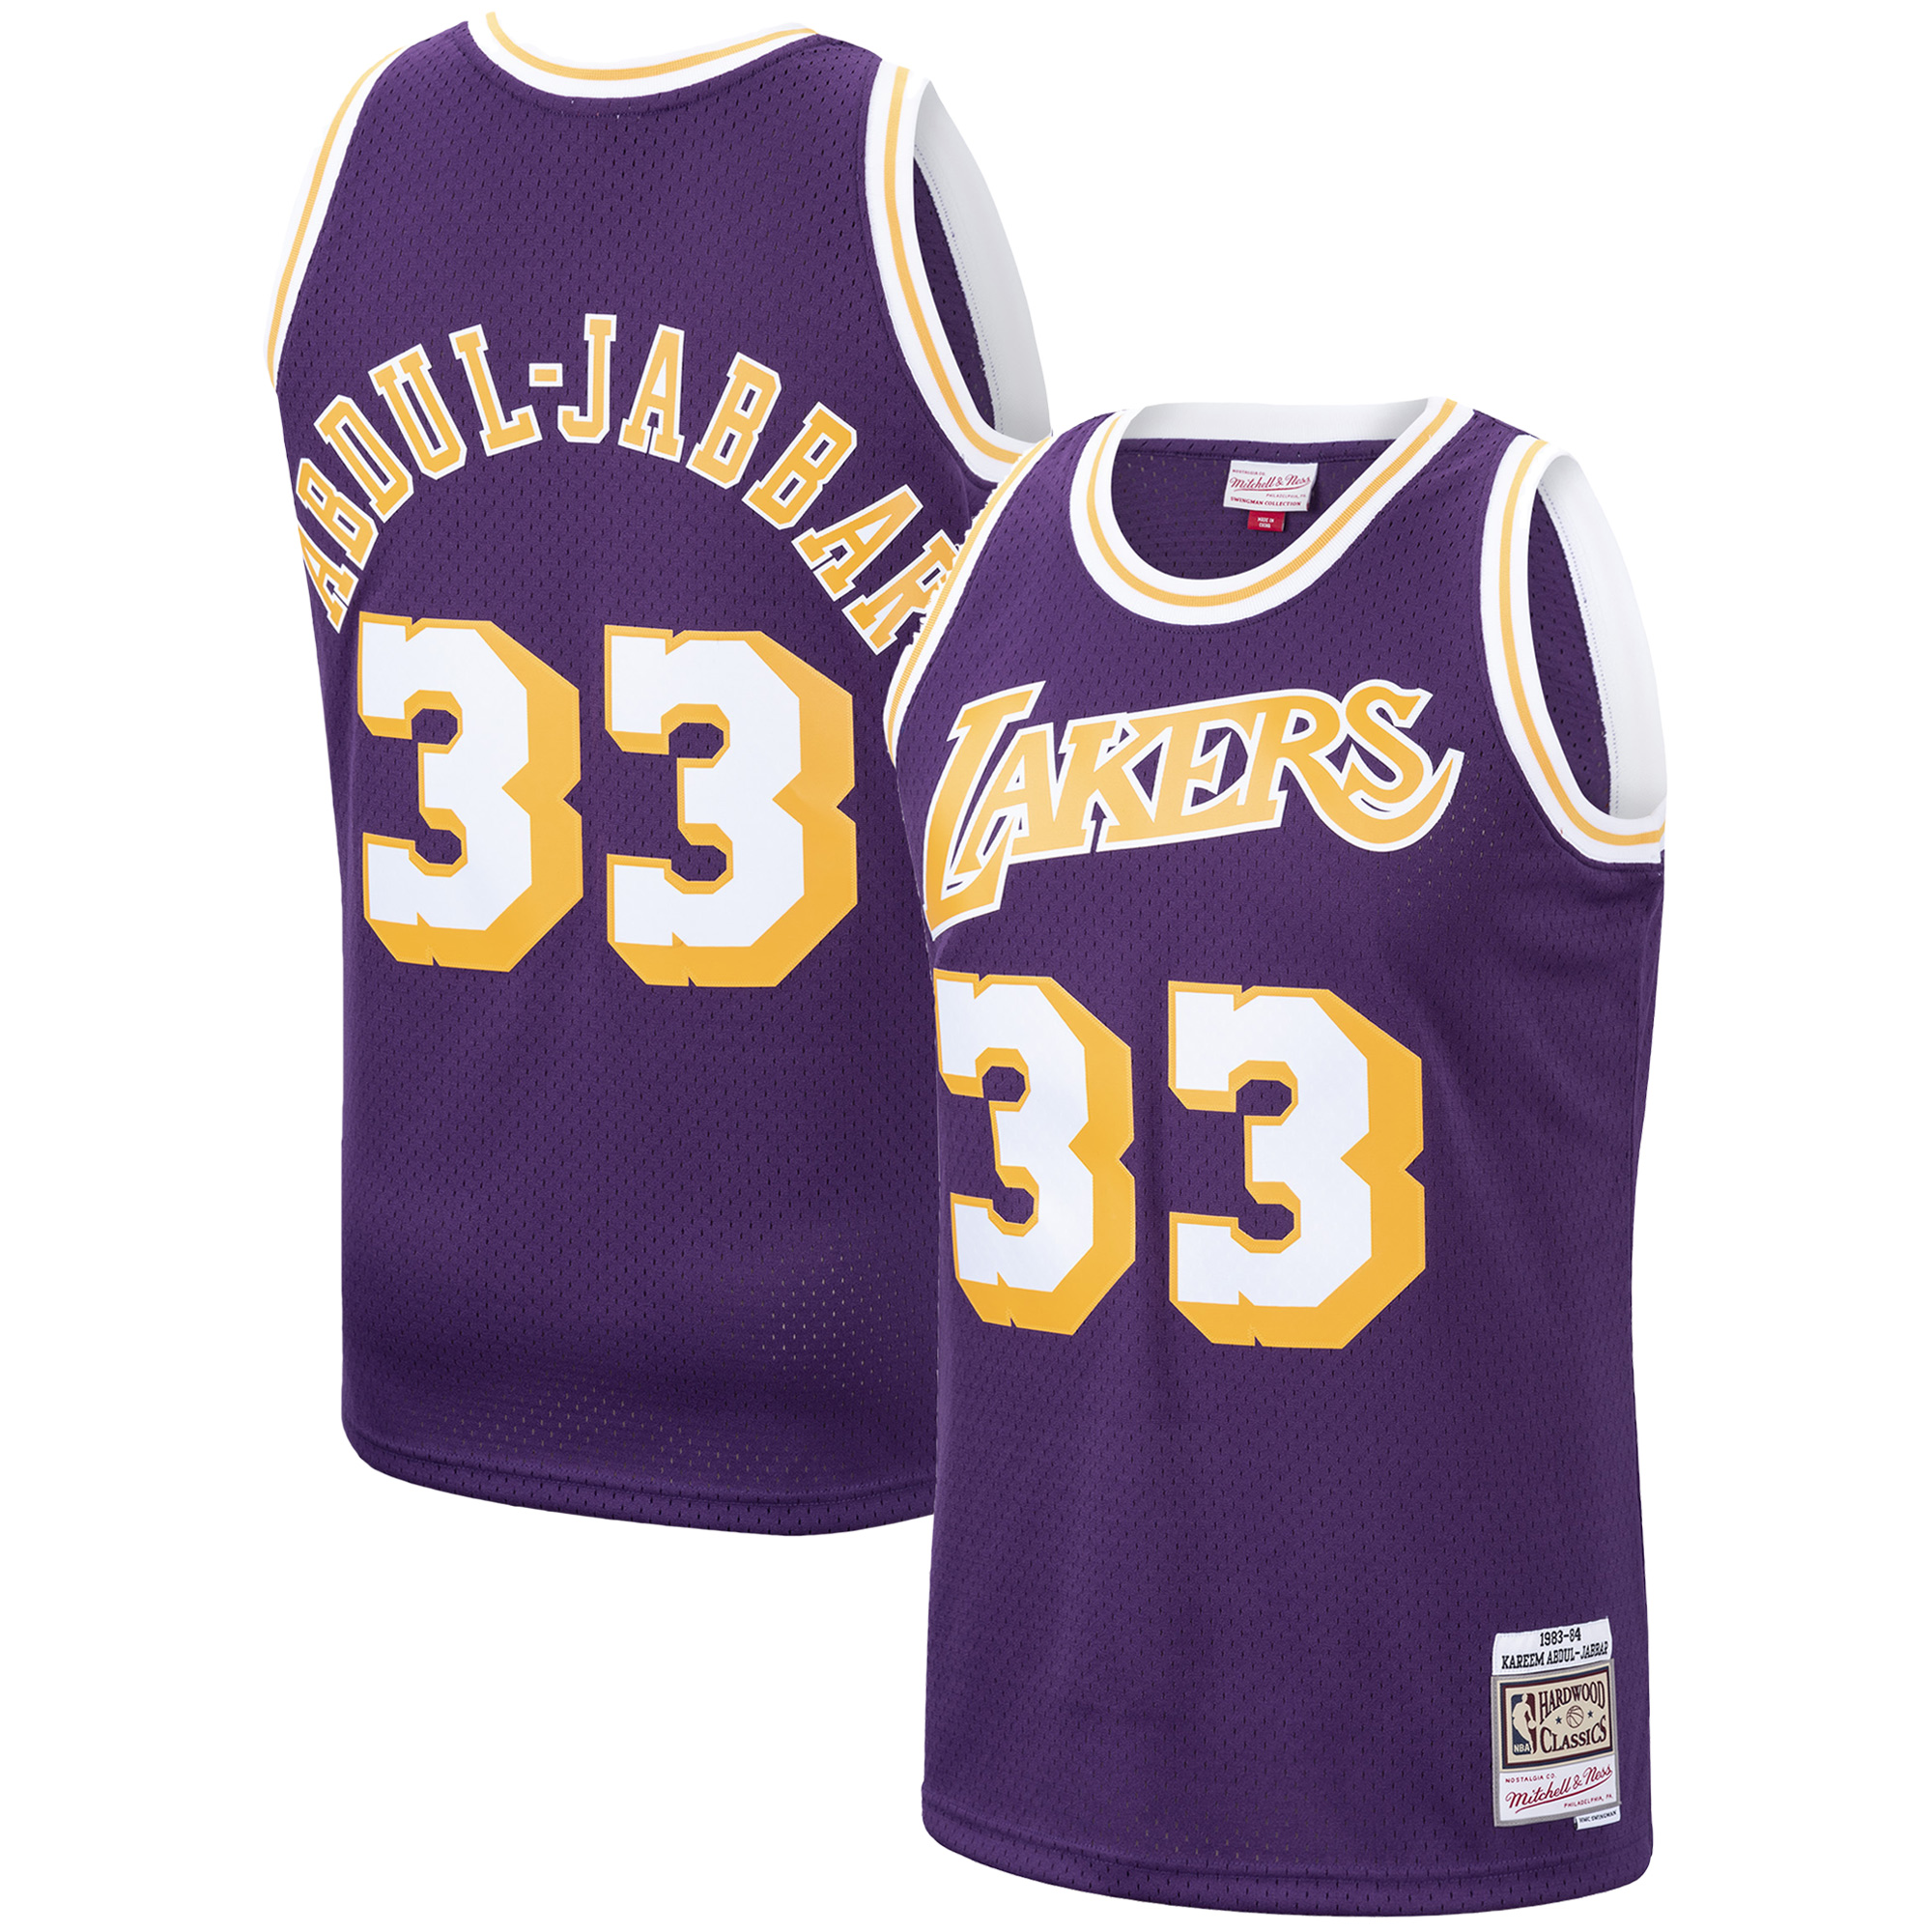 Kareem Abdul-Jabbar Los Angeles Lakers Mitchell & Ness 1983-84 Hardwood Classics Swingman Jersey - Purple